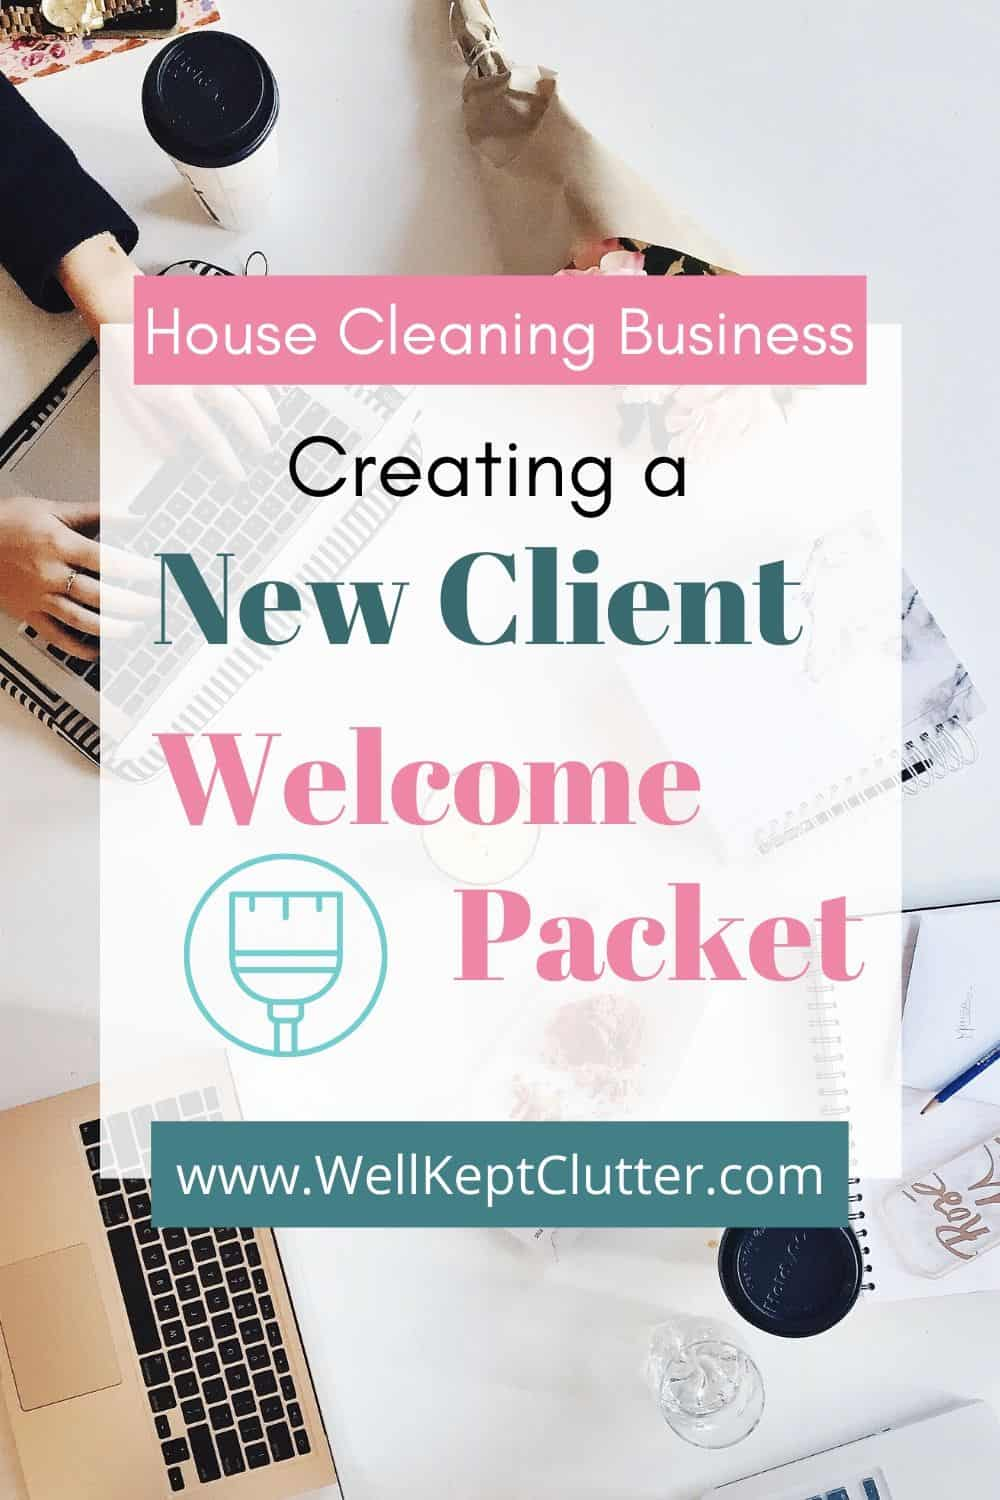 New Client Welcome Kit for Your Cleaning Business